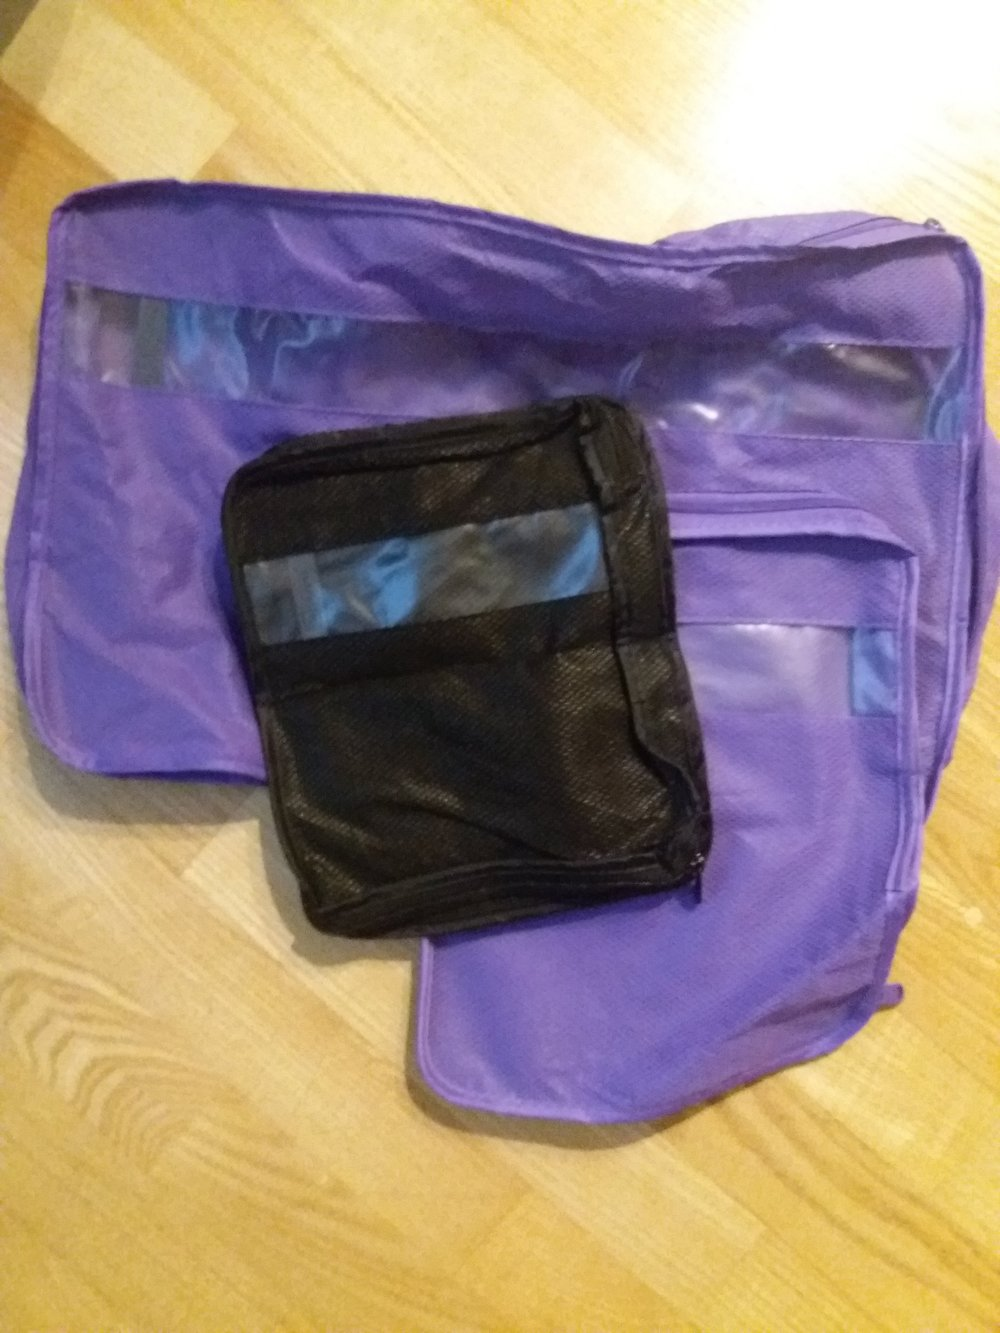 same goes with these packing cubes. these are extremely handy in clothing storage and keep them in order.